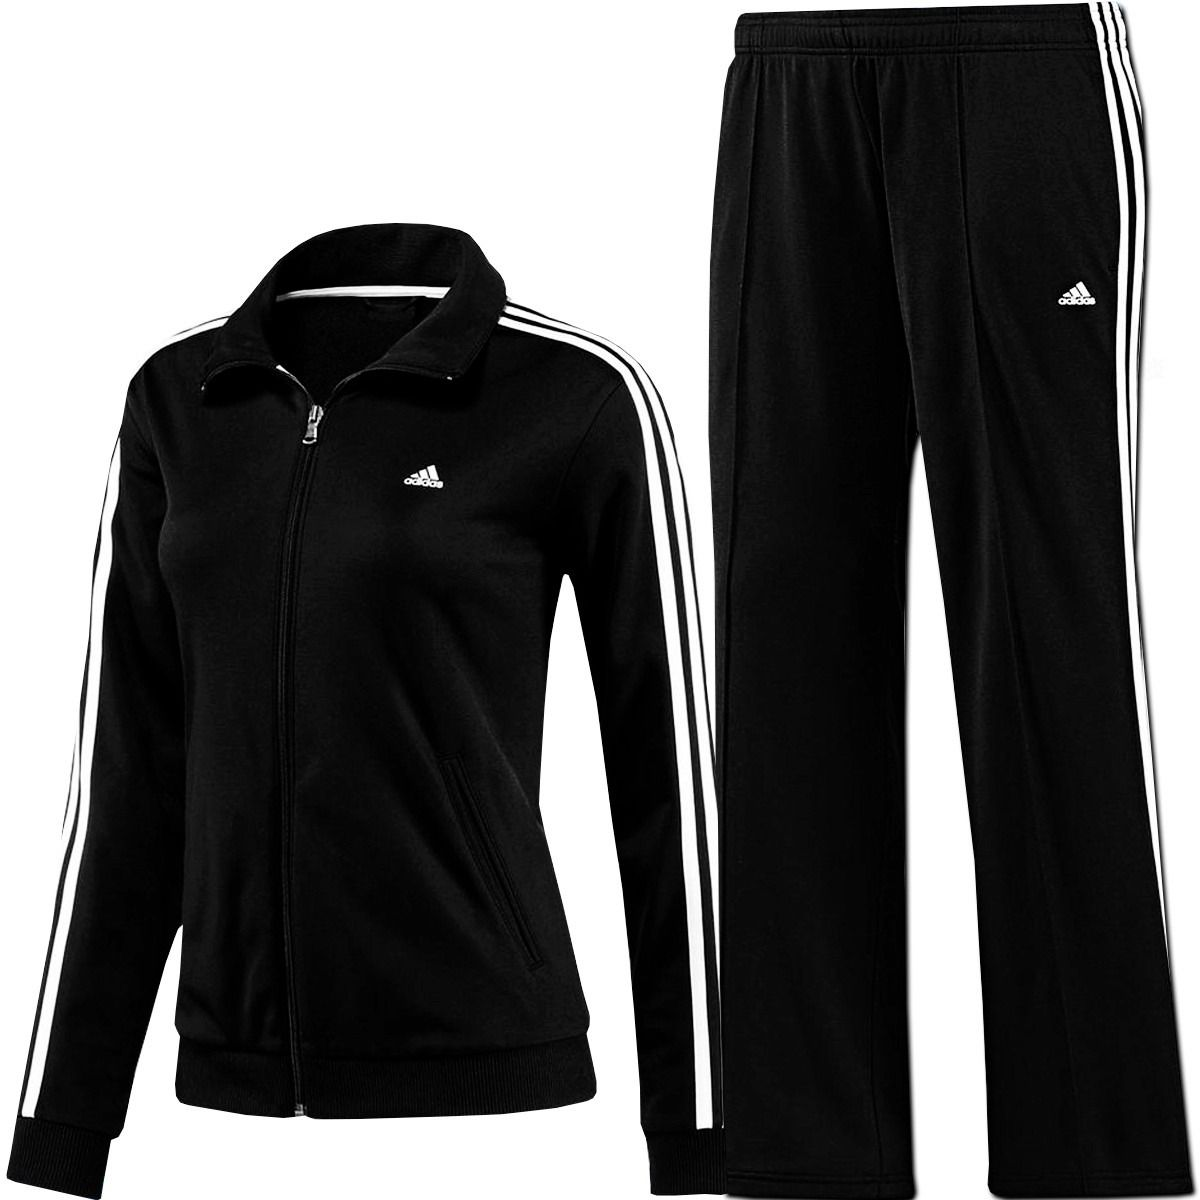 788f4dcfa2d93 Adidas Conjunto Equipo Deportivo Fitness Gym Dama Polyester -   1.790